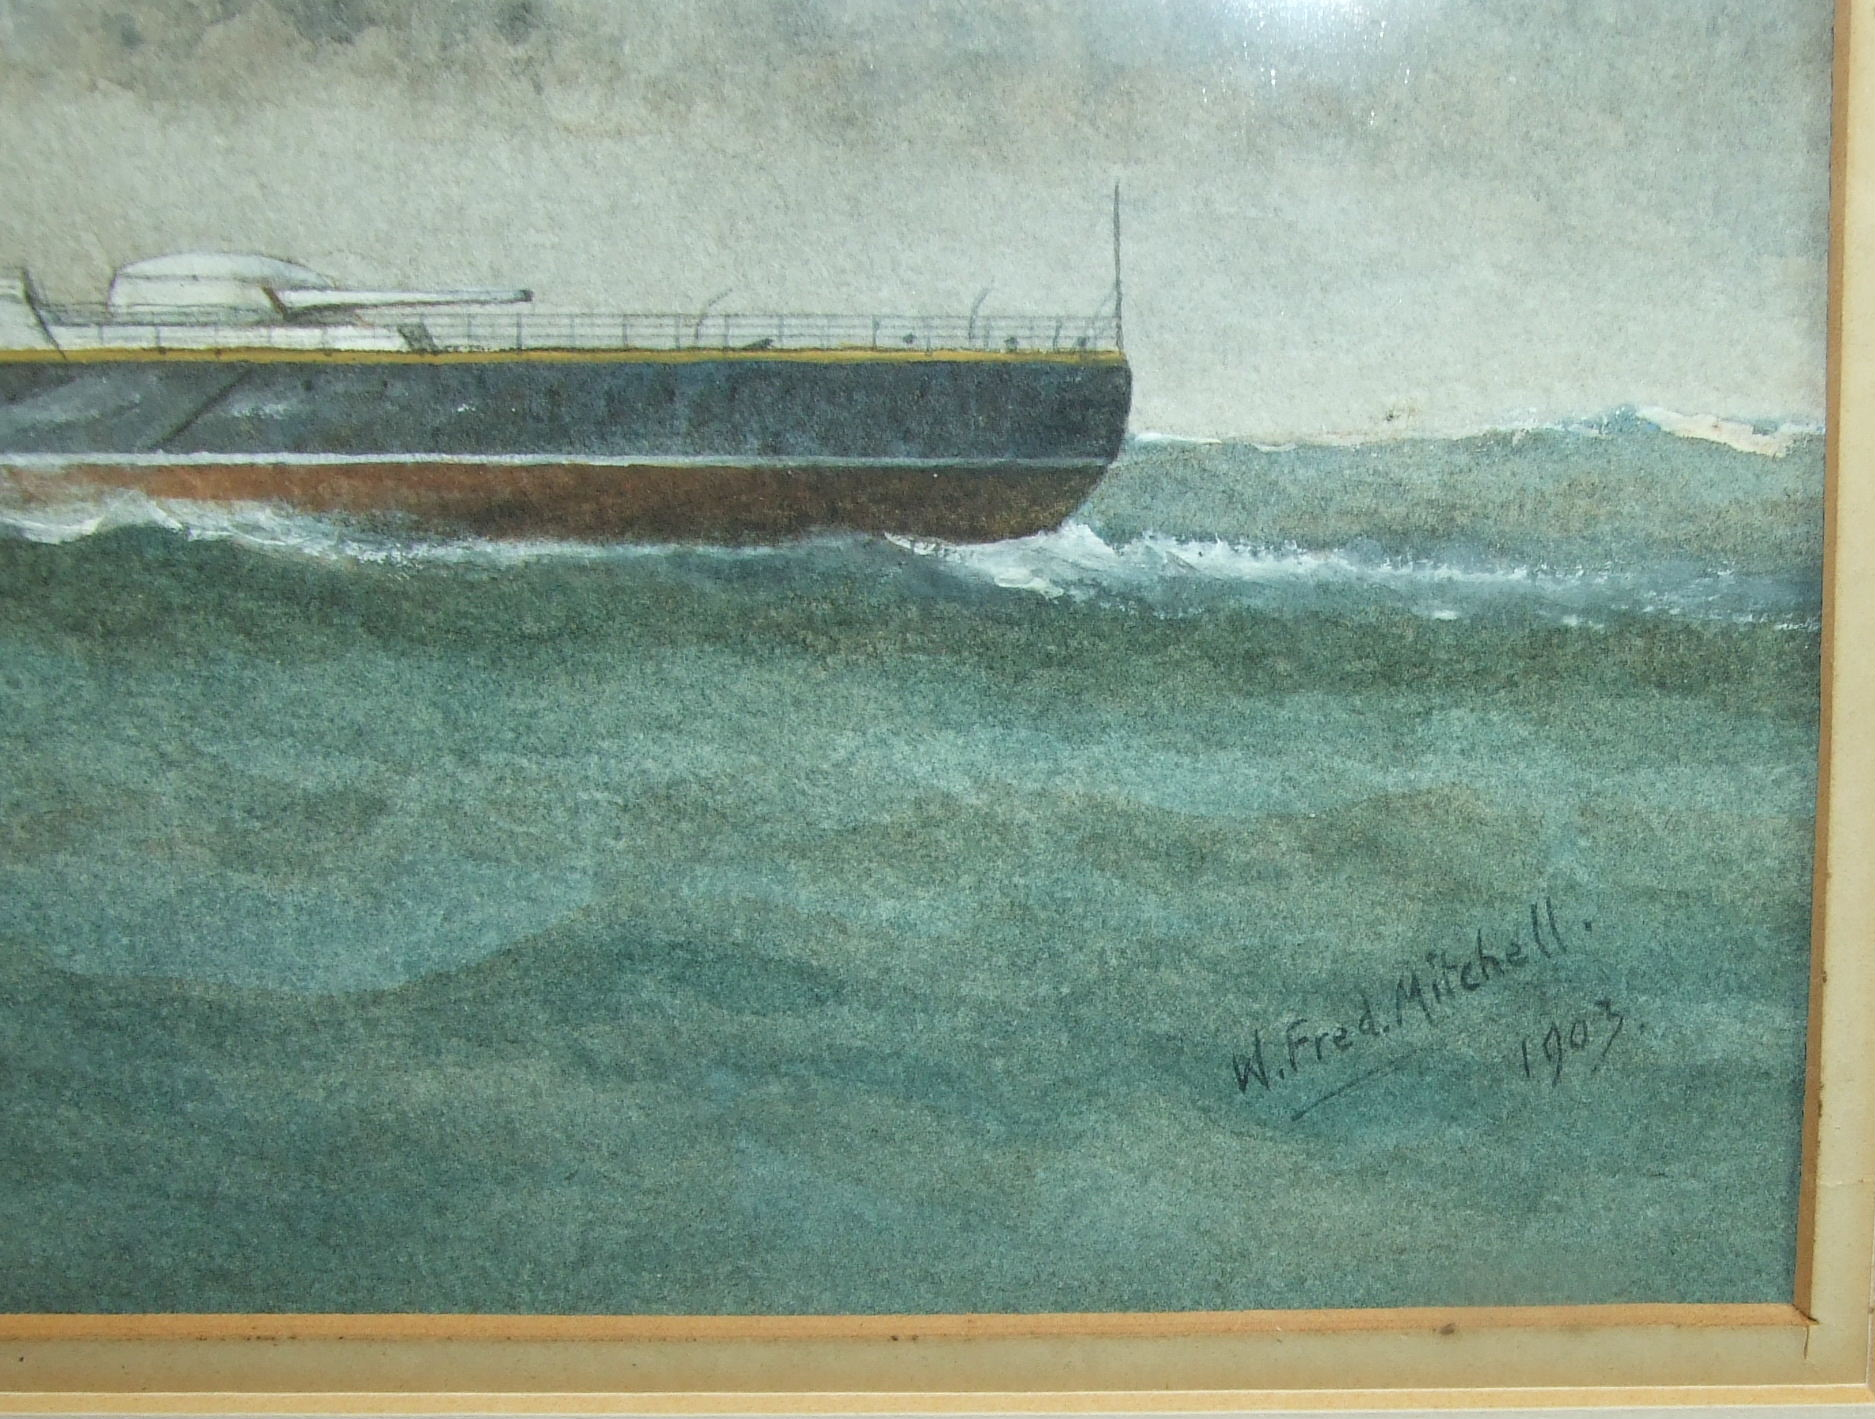 W Fred Mitchell (1845-1914) HMS CAMPERDOWN Signed watercolour, dated 1903 and numbered 2076, 24.5 - Image 2 of 3